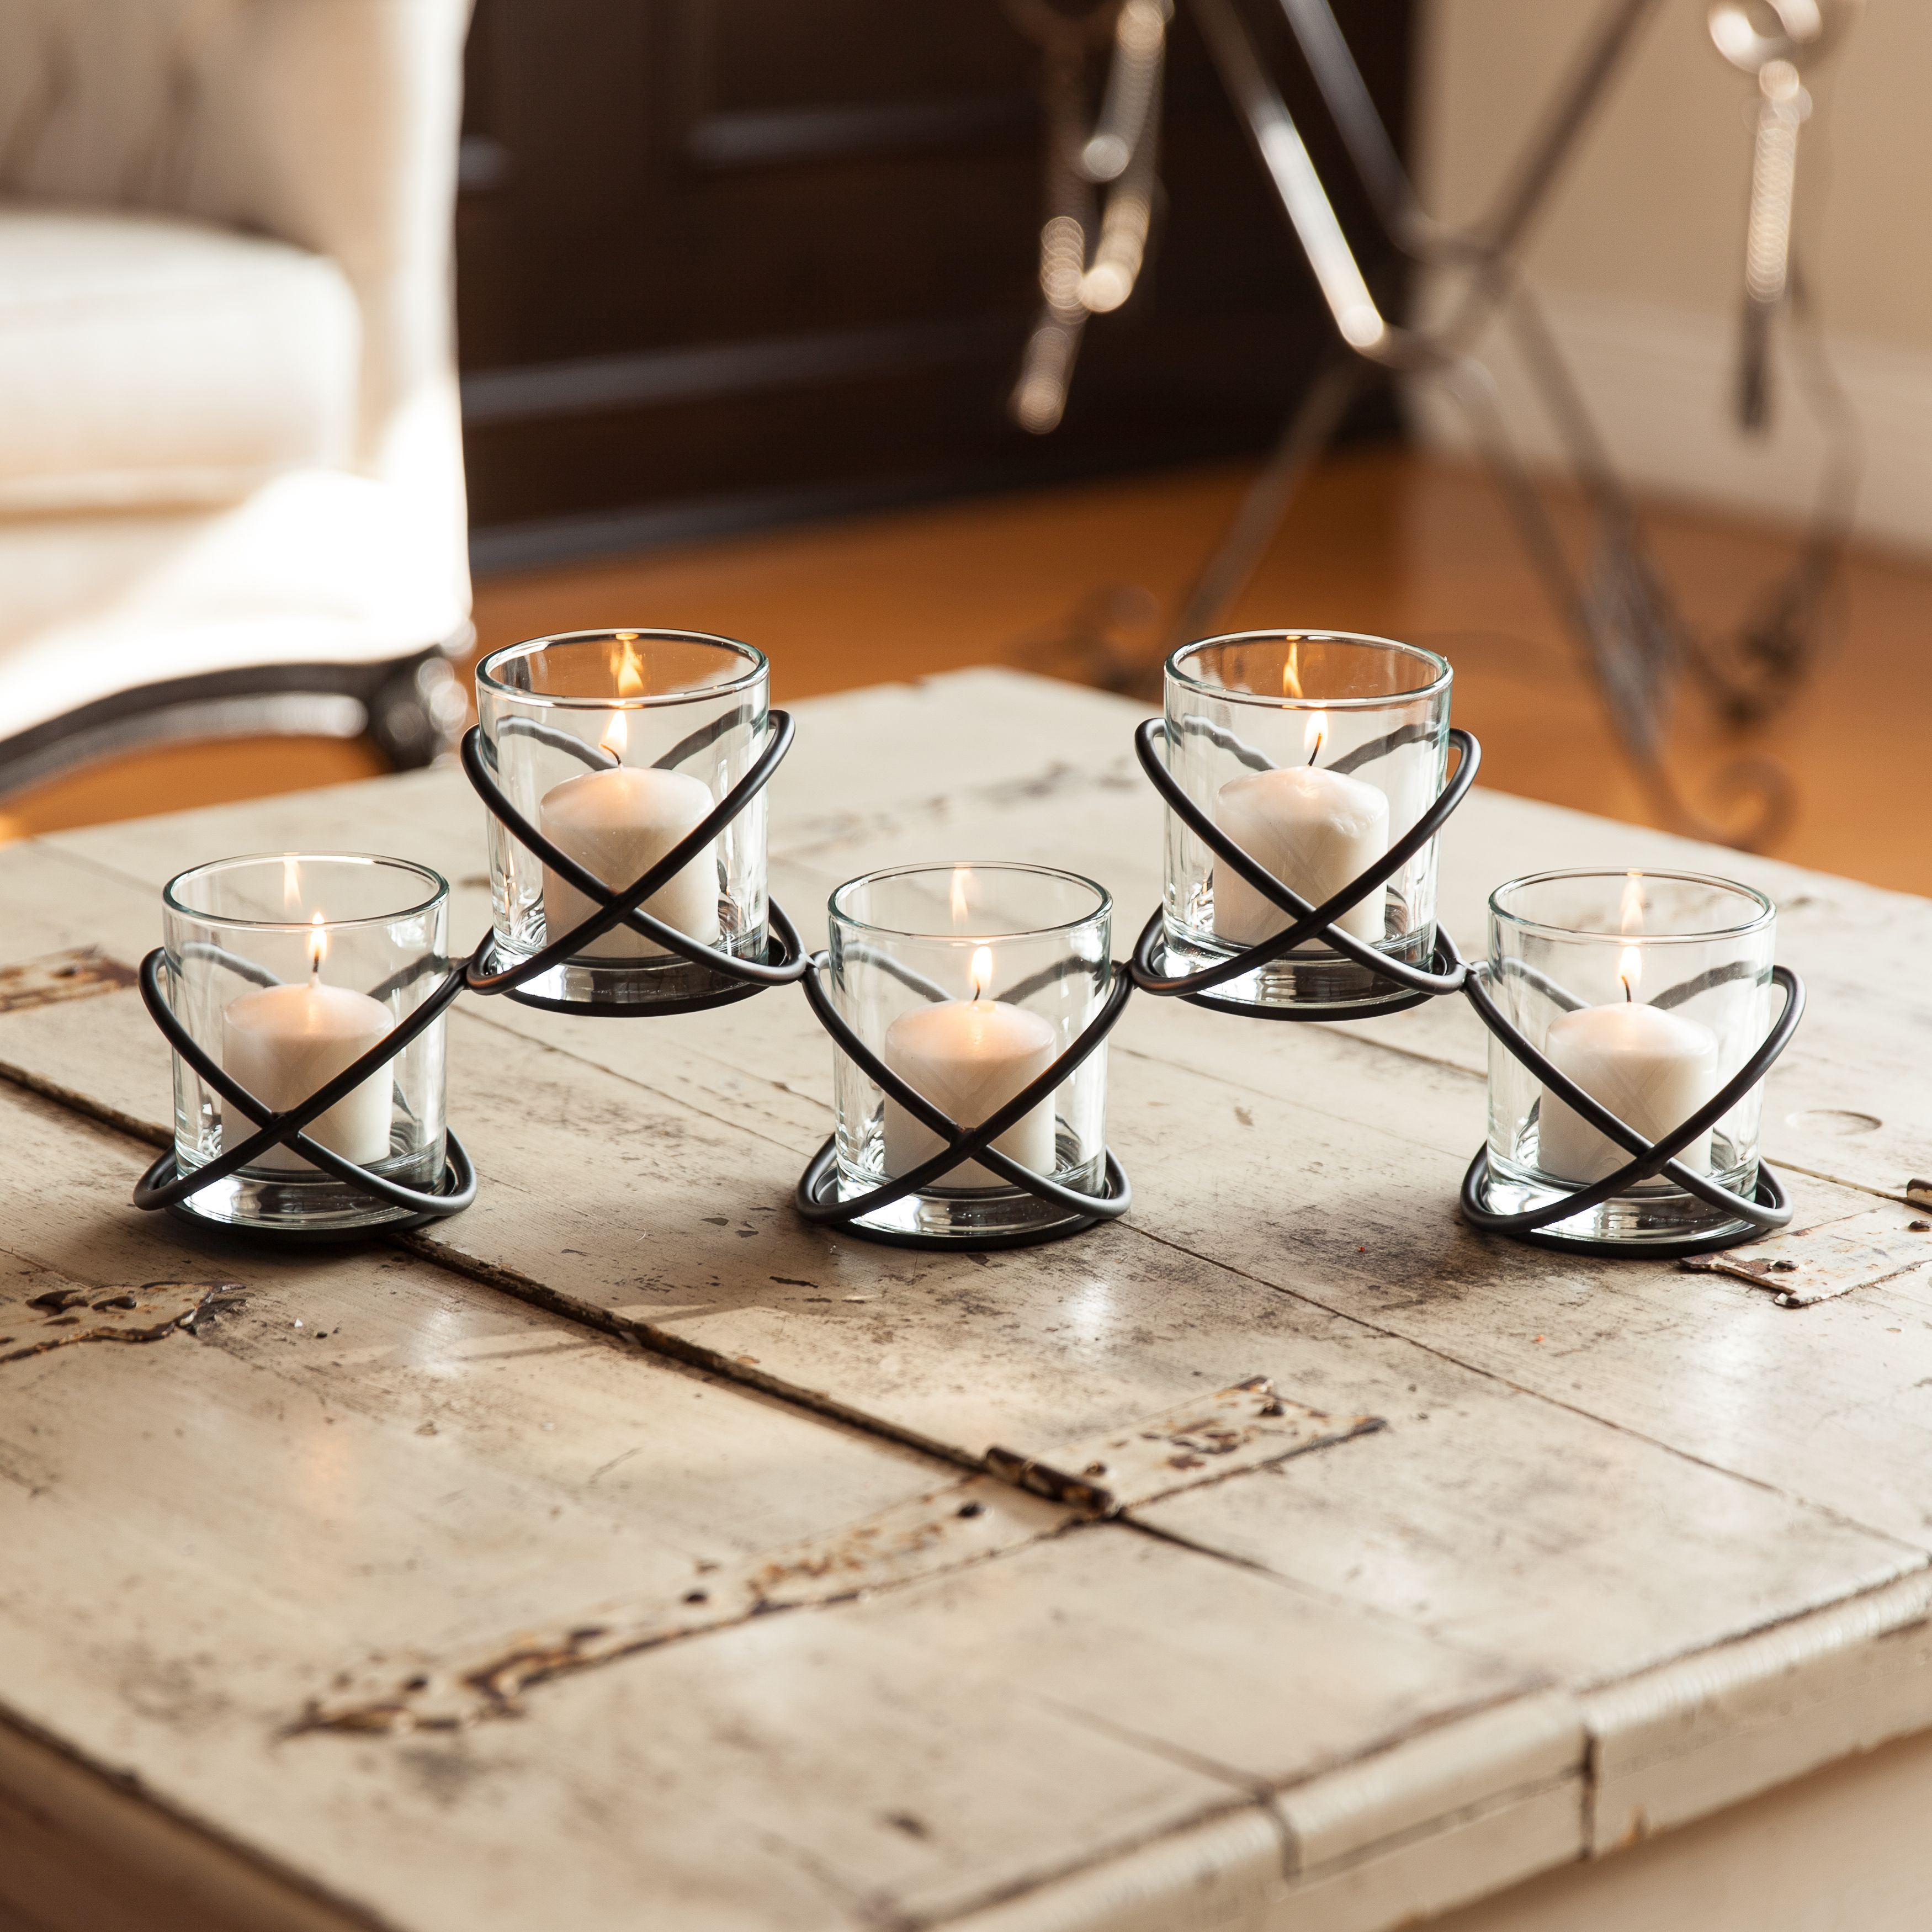 Five Glass Multiple Candleholder On Orbits Metal Stand Danya B In 2021 Candle Holders Danya B Multiple Candle Holder